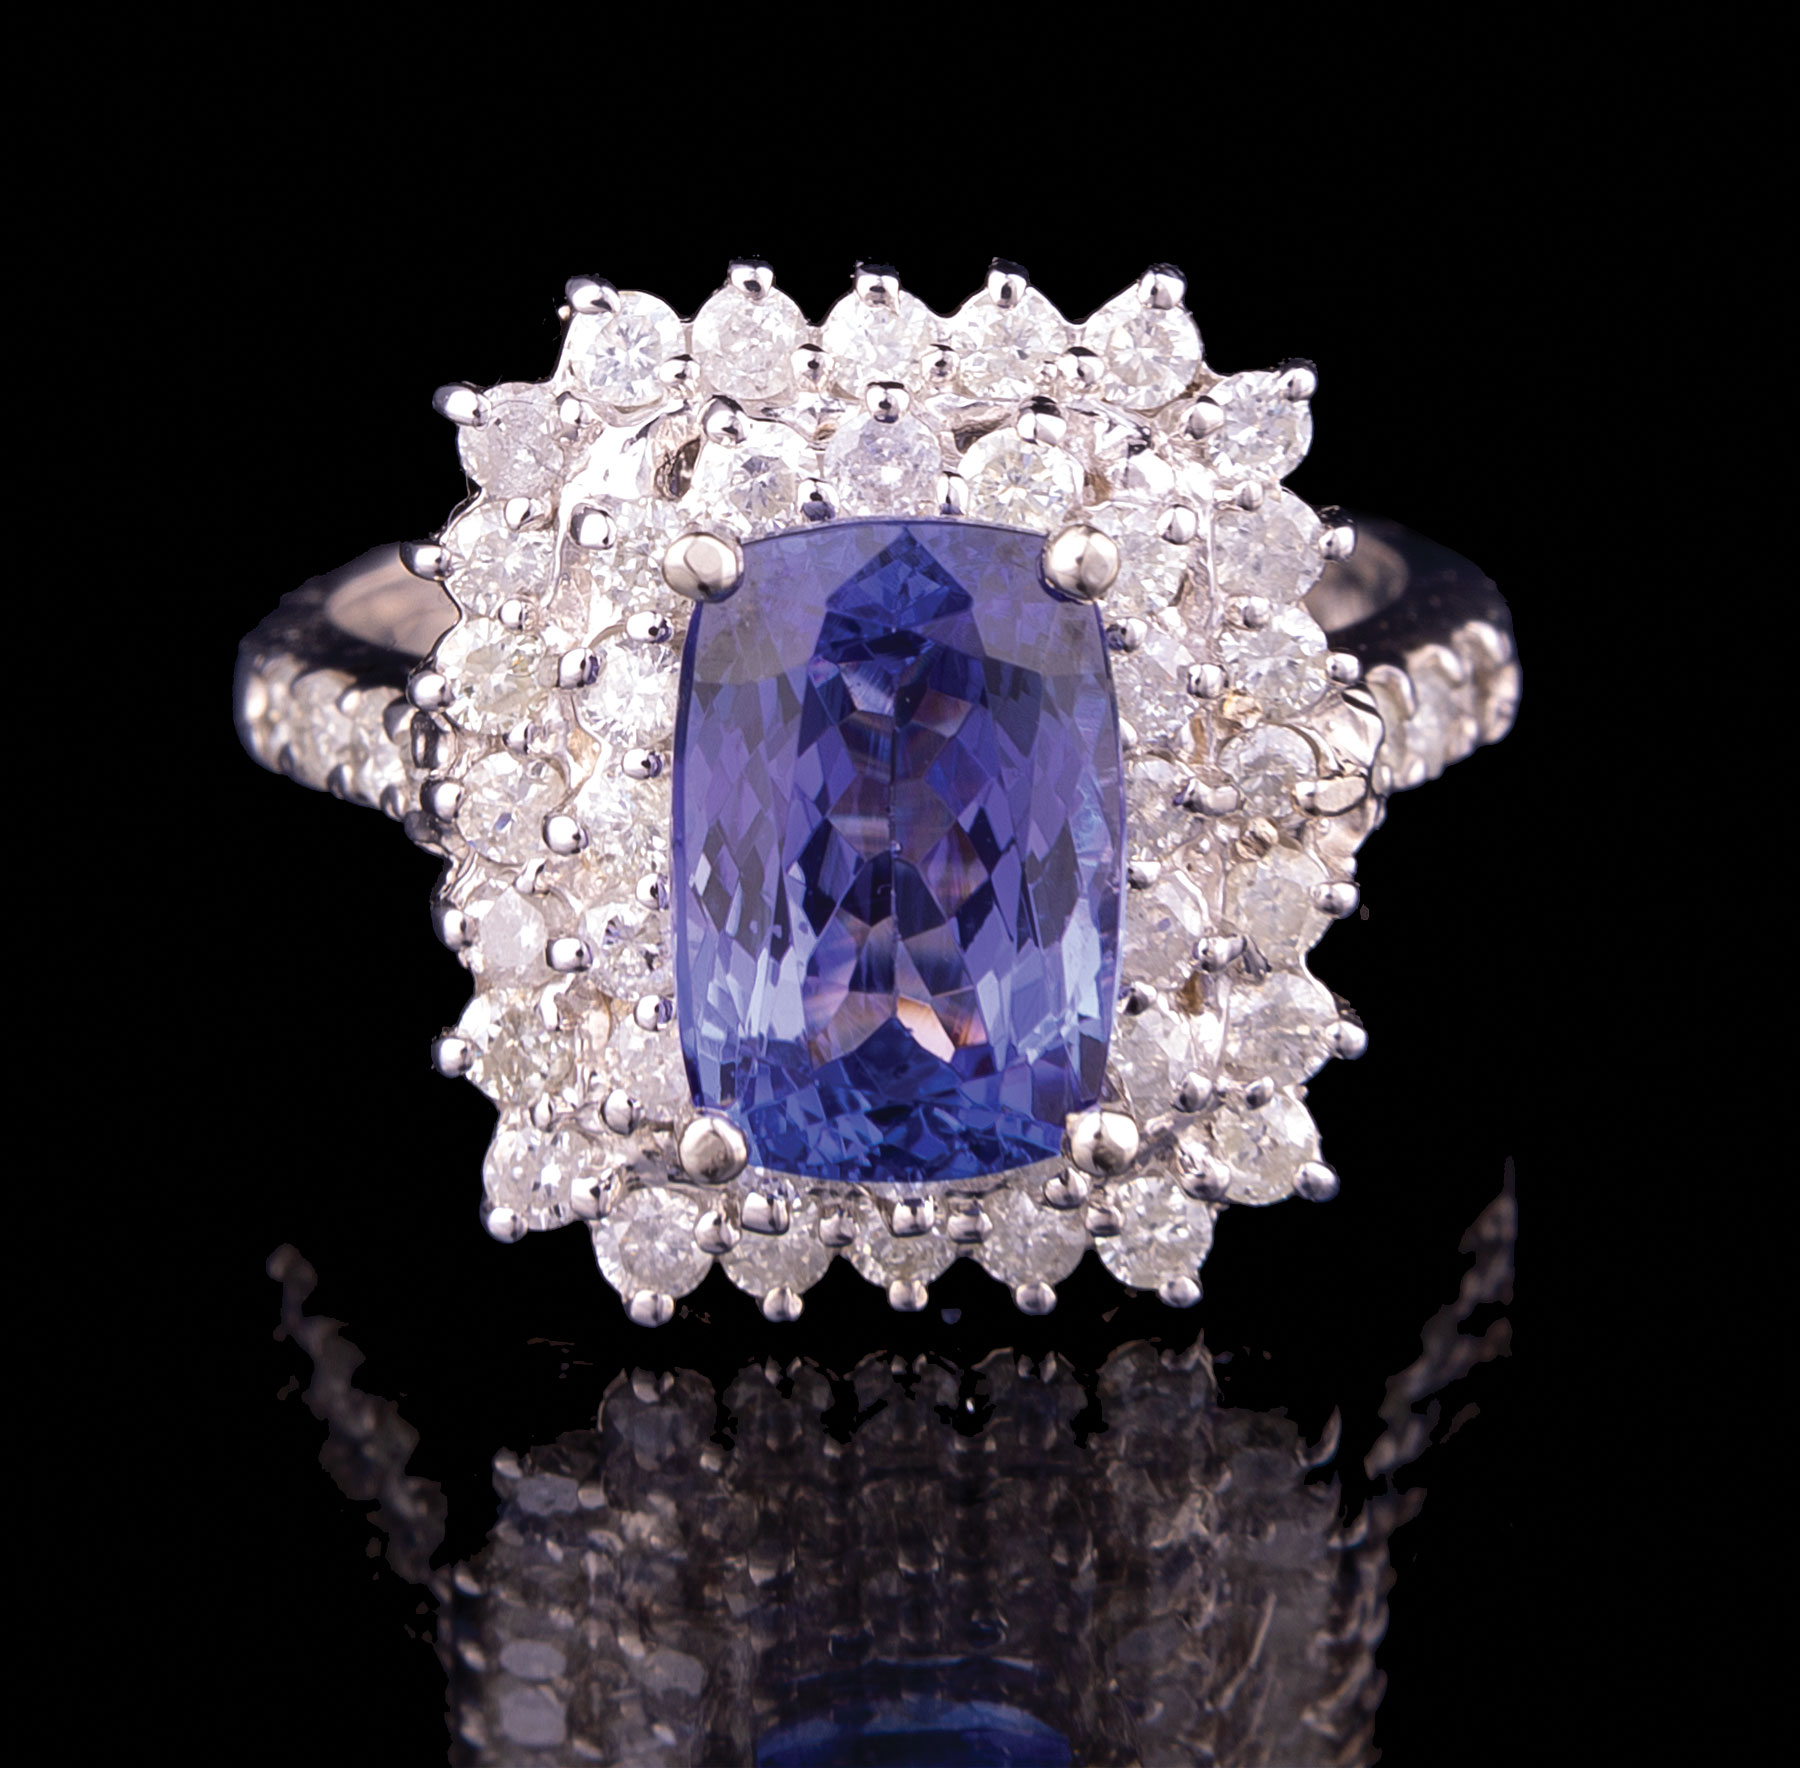 Lot 591 - 14 kt. White Gold, Tanzanite and Diamond Ring , central rectangular faceted tanzanite, wt. 3.07